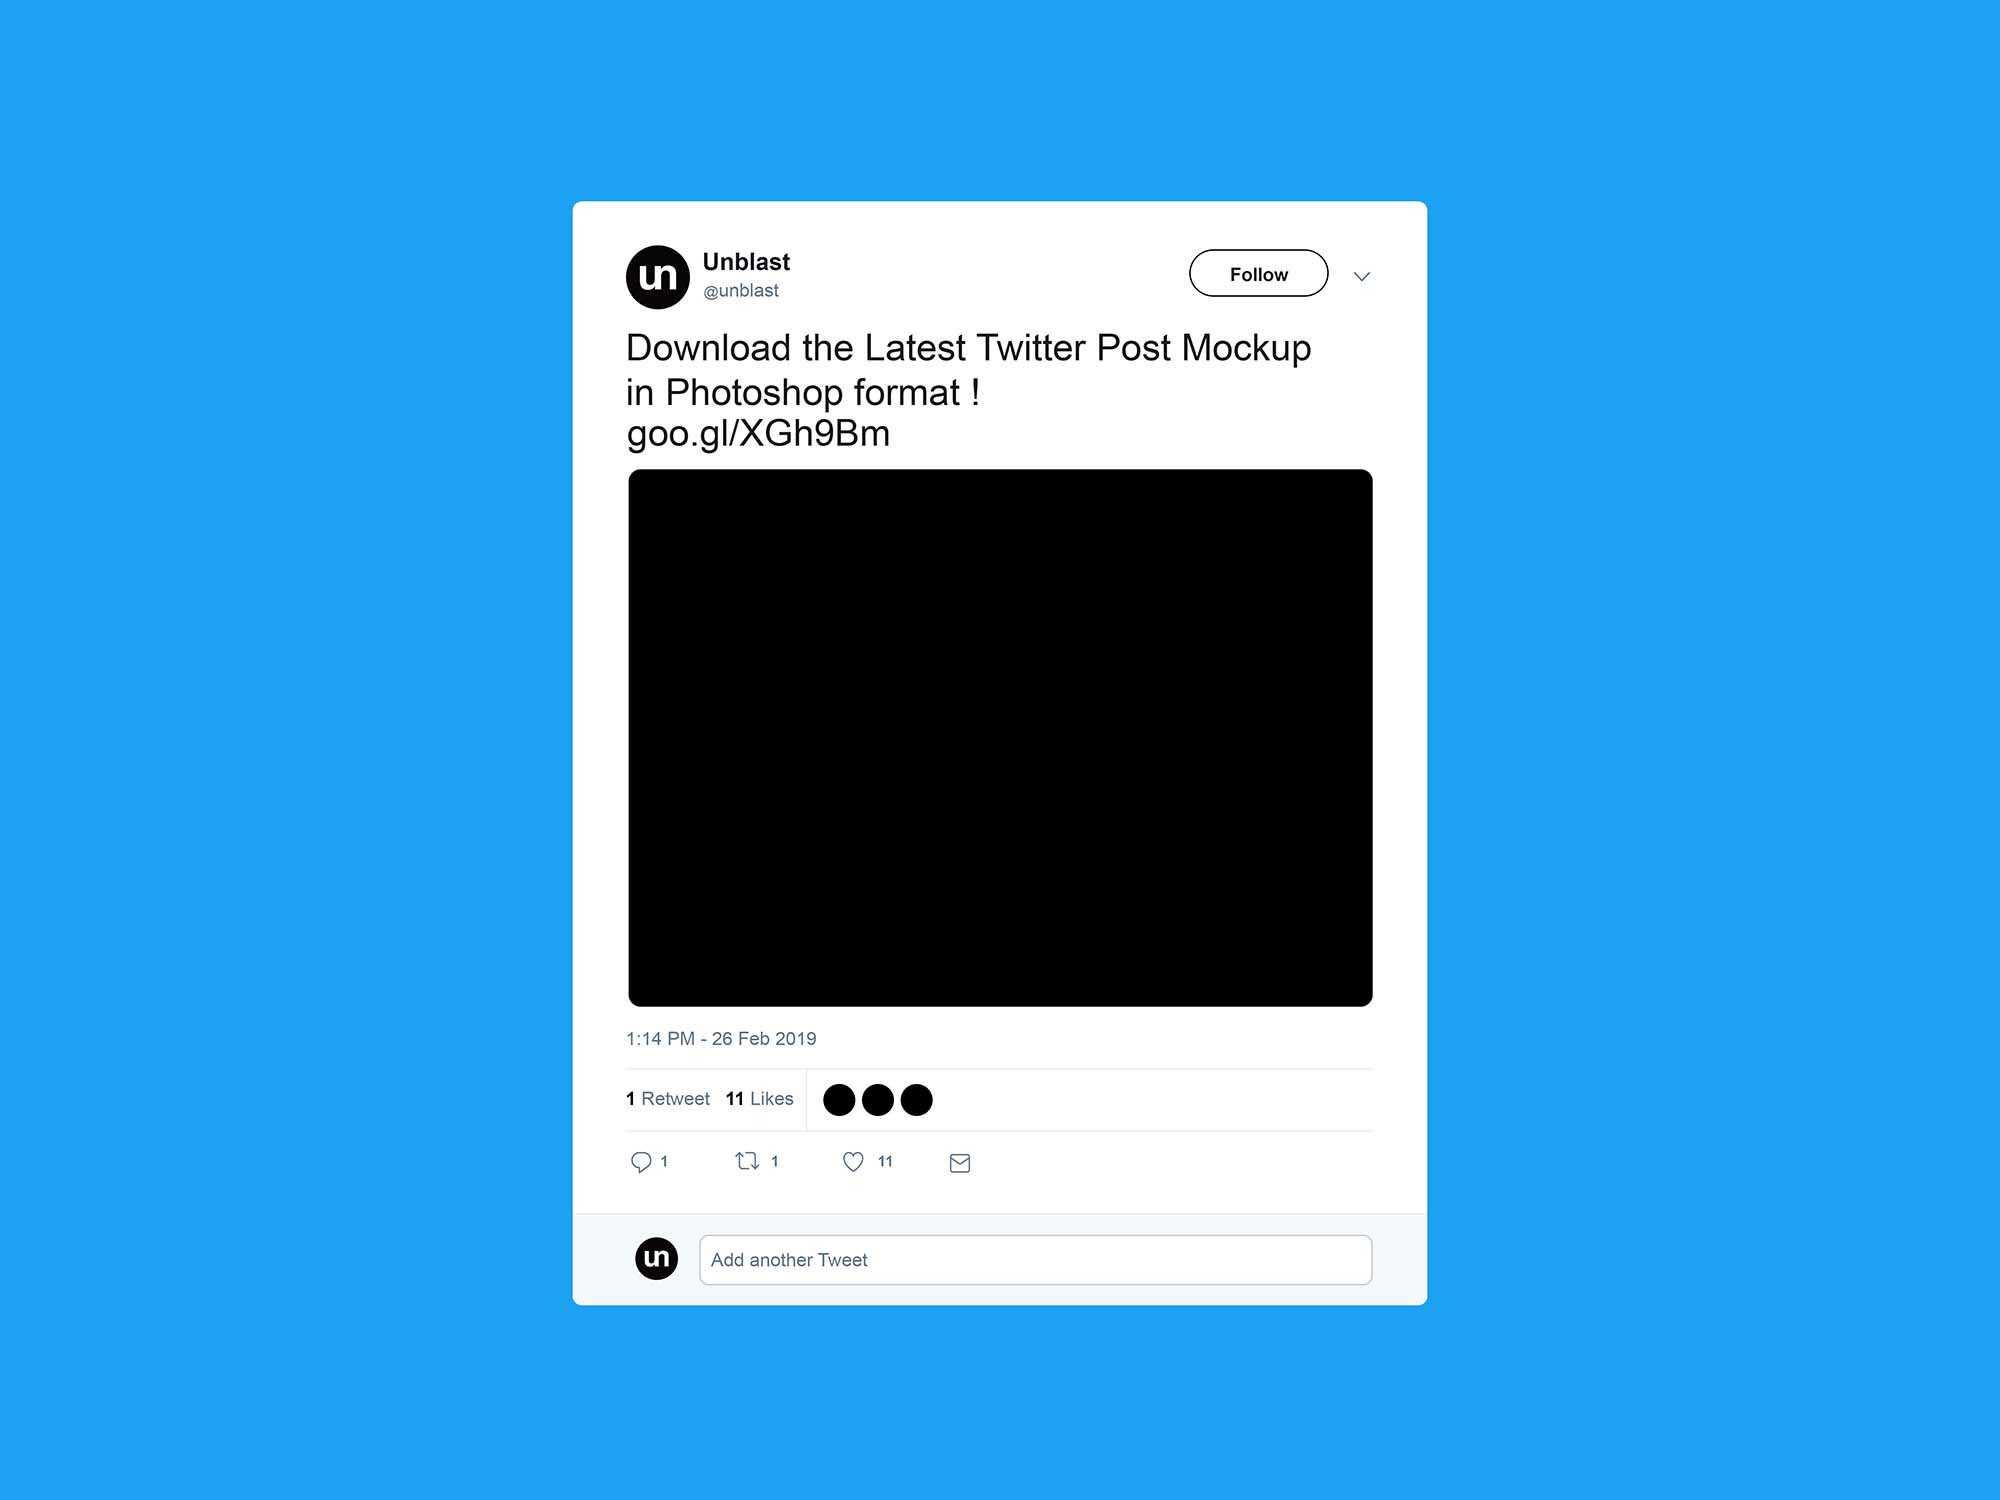 Free Twitter Post Mockup (2019) For Blank Twitter Profile Template